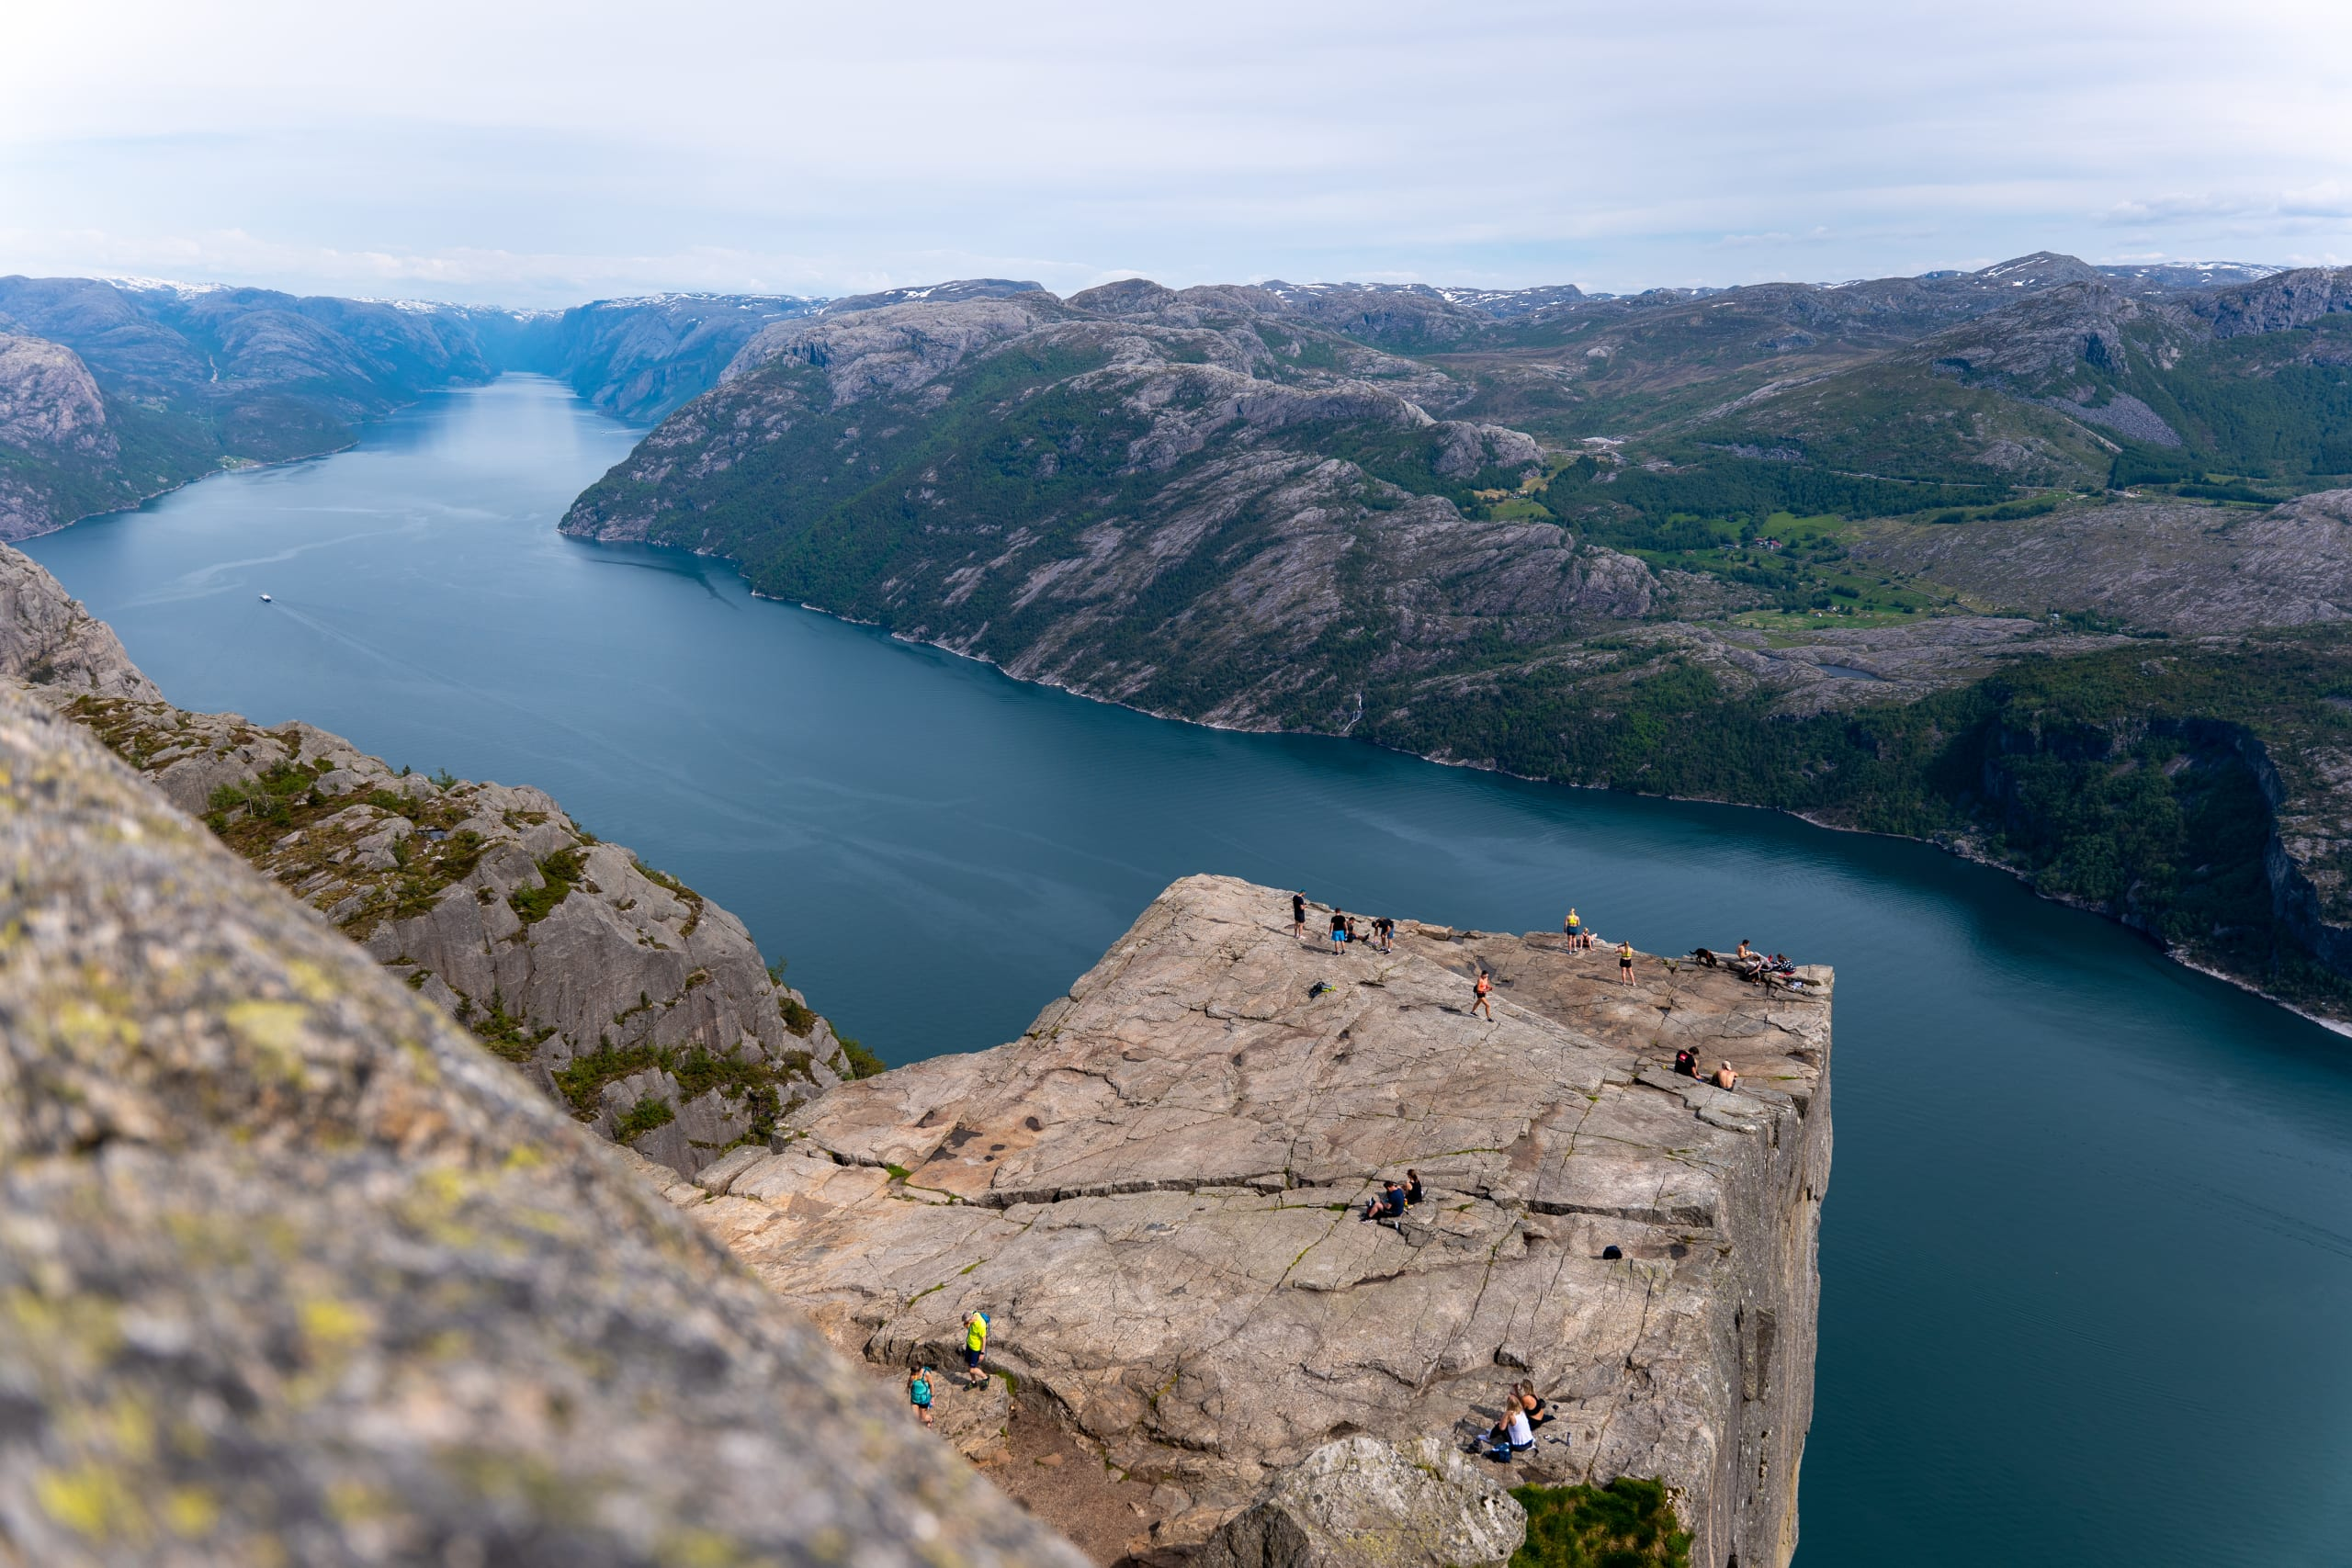 The Pulpit Rock and Lysefjord